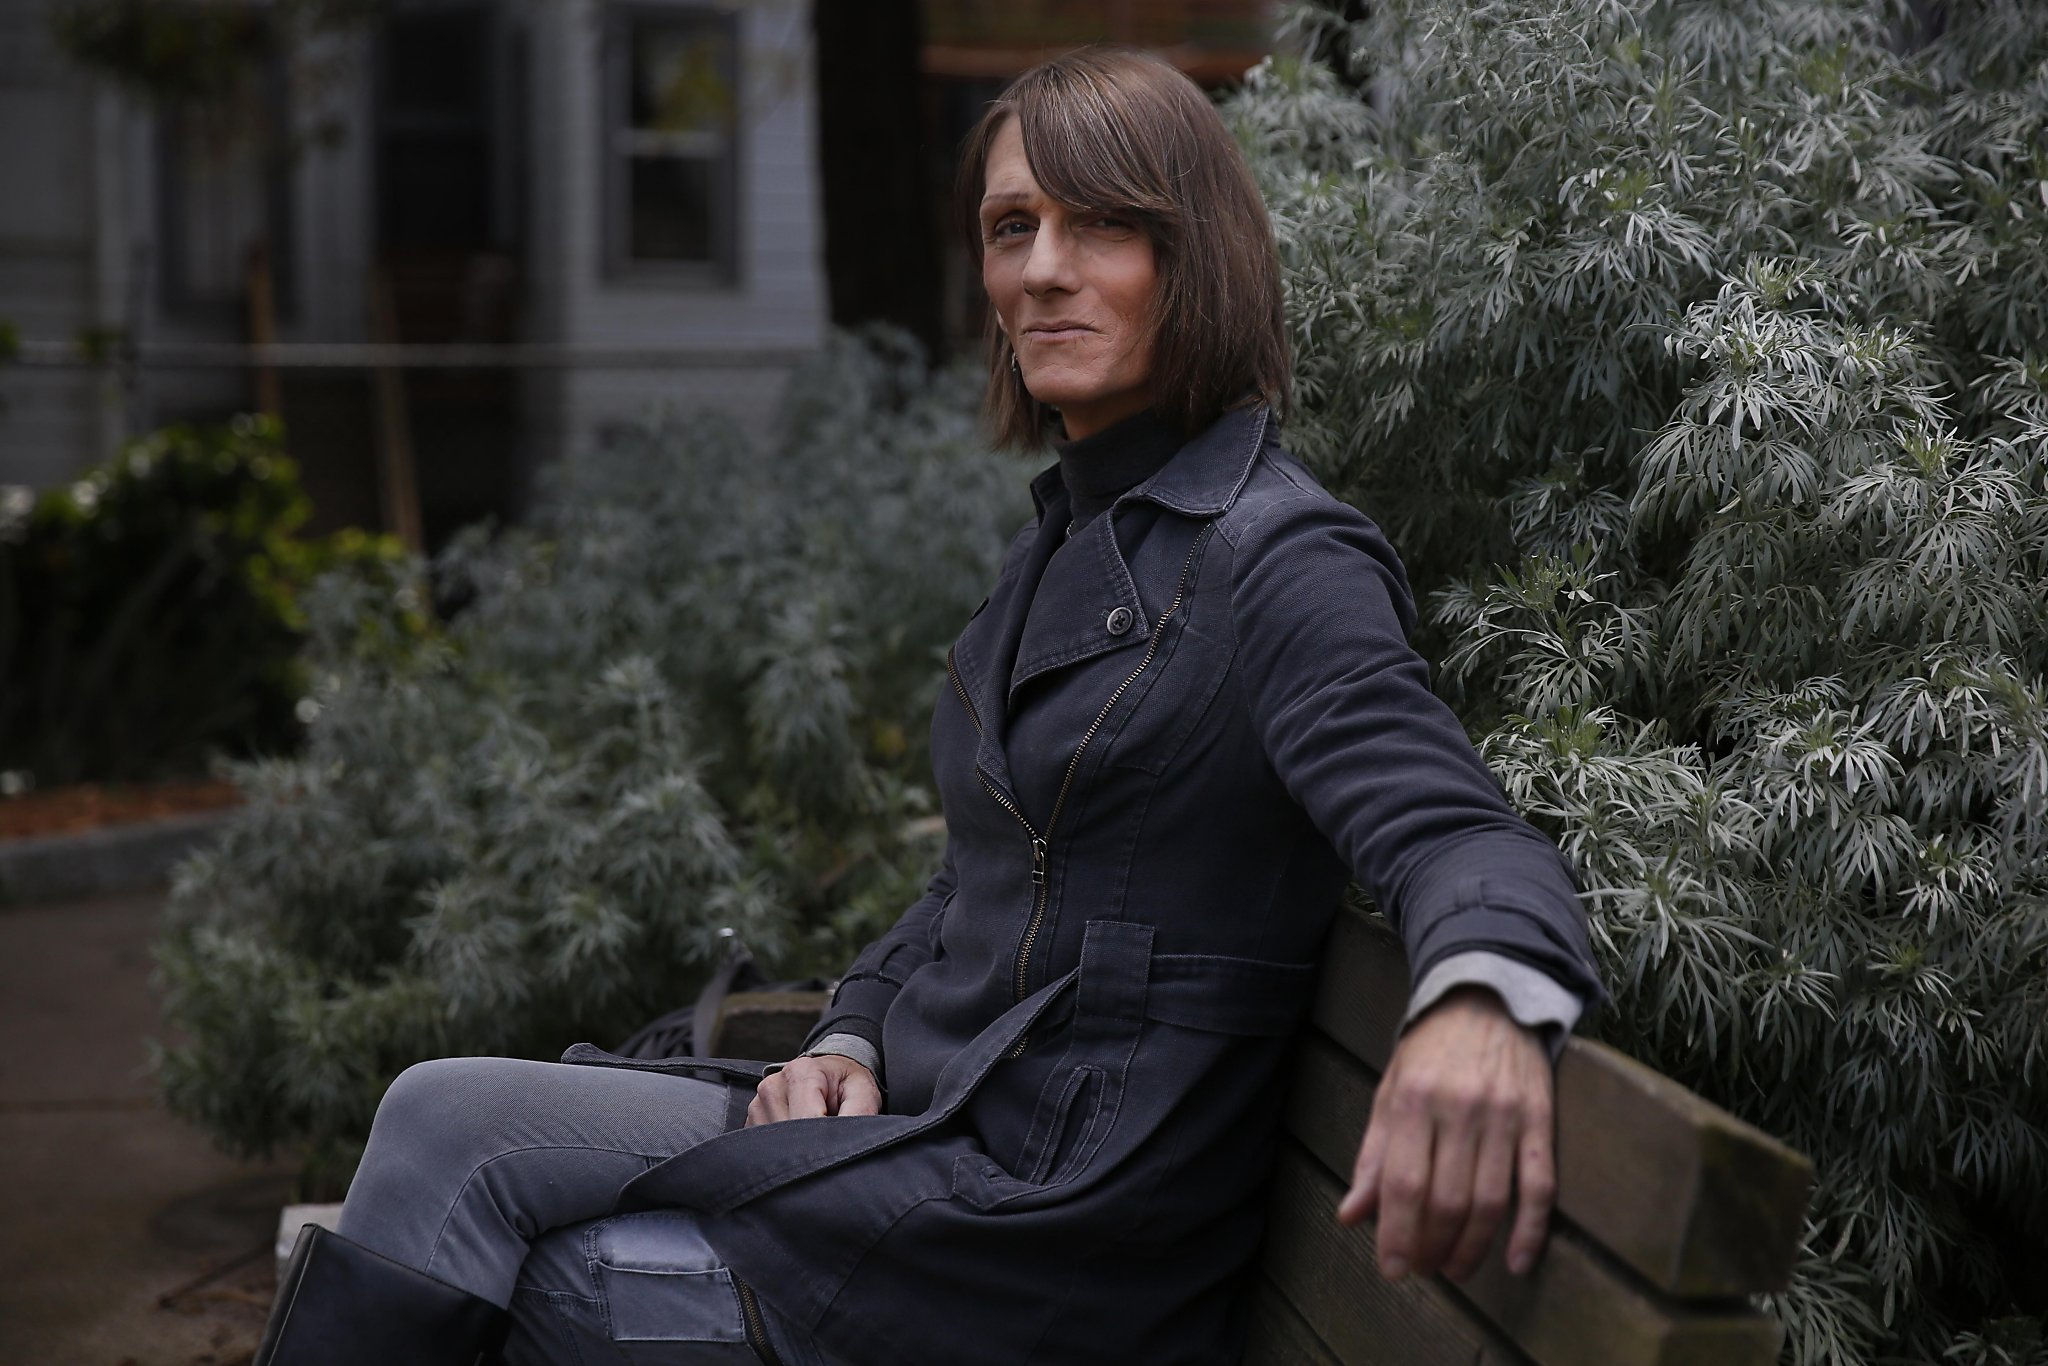 Transgender pioneer out of prison, on a new path - San Francisco Chronicle